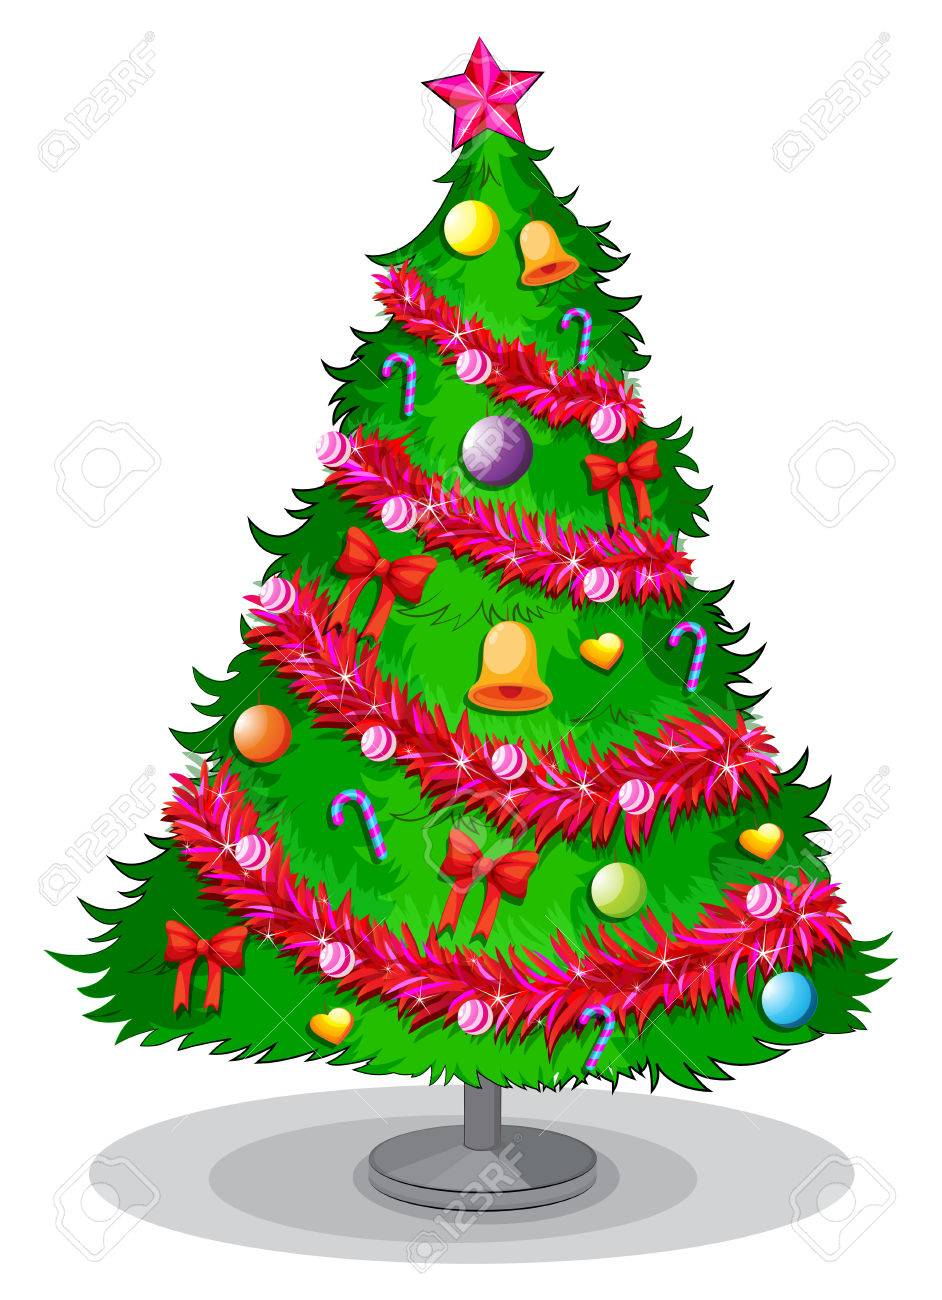 Illustration Of A Colorful Christmas Tree On A White Background ...